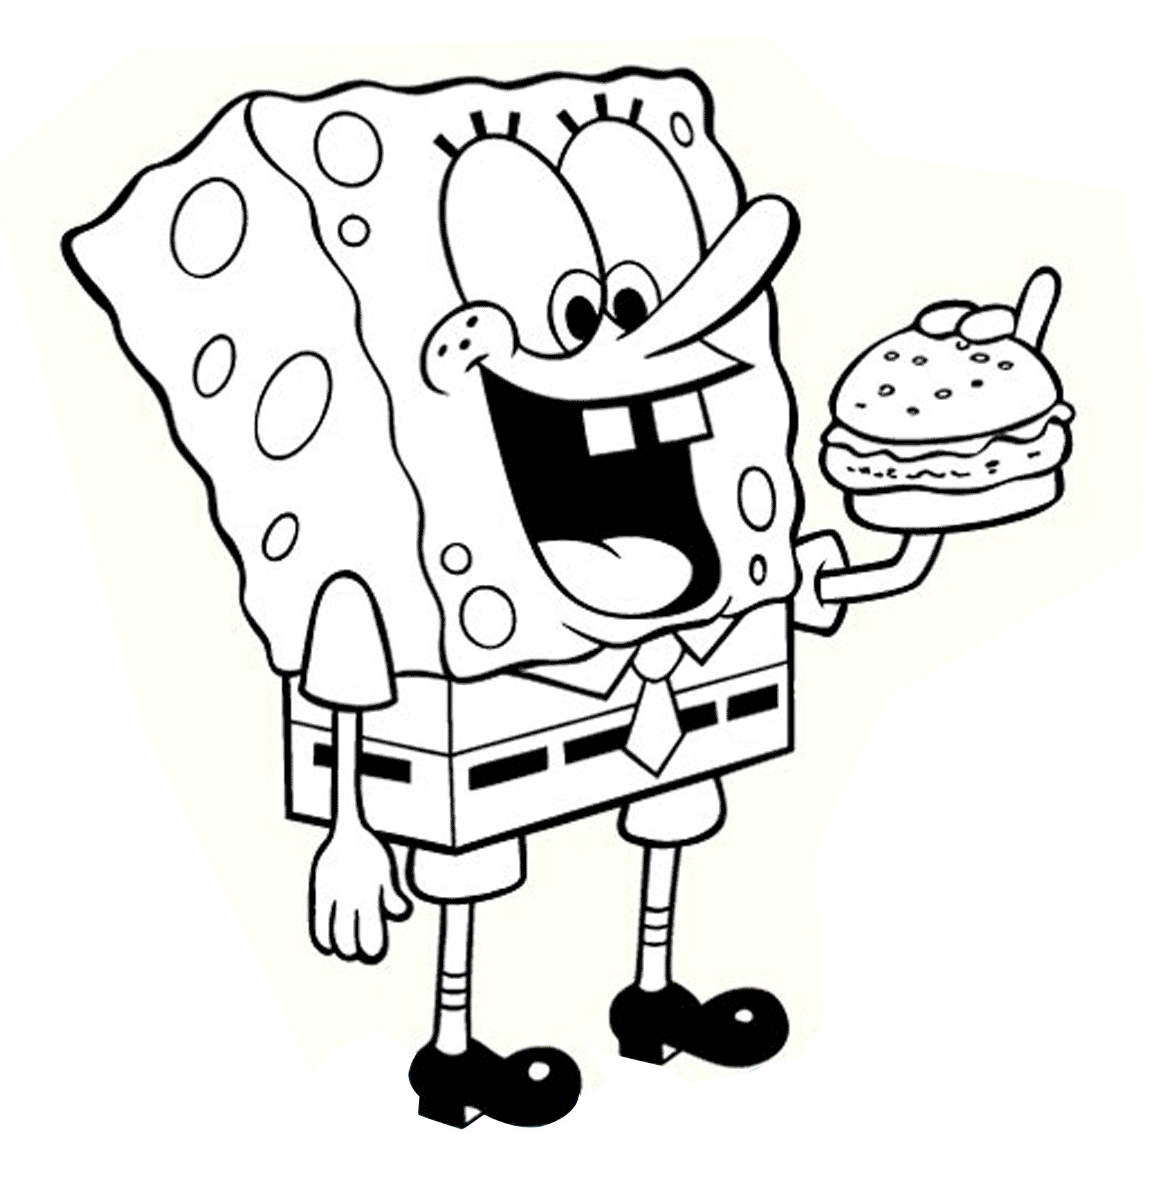 450 Top Spongebob Coloring Pages To Print , Free HD Download